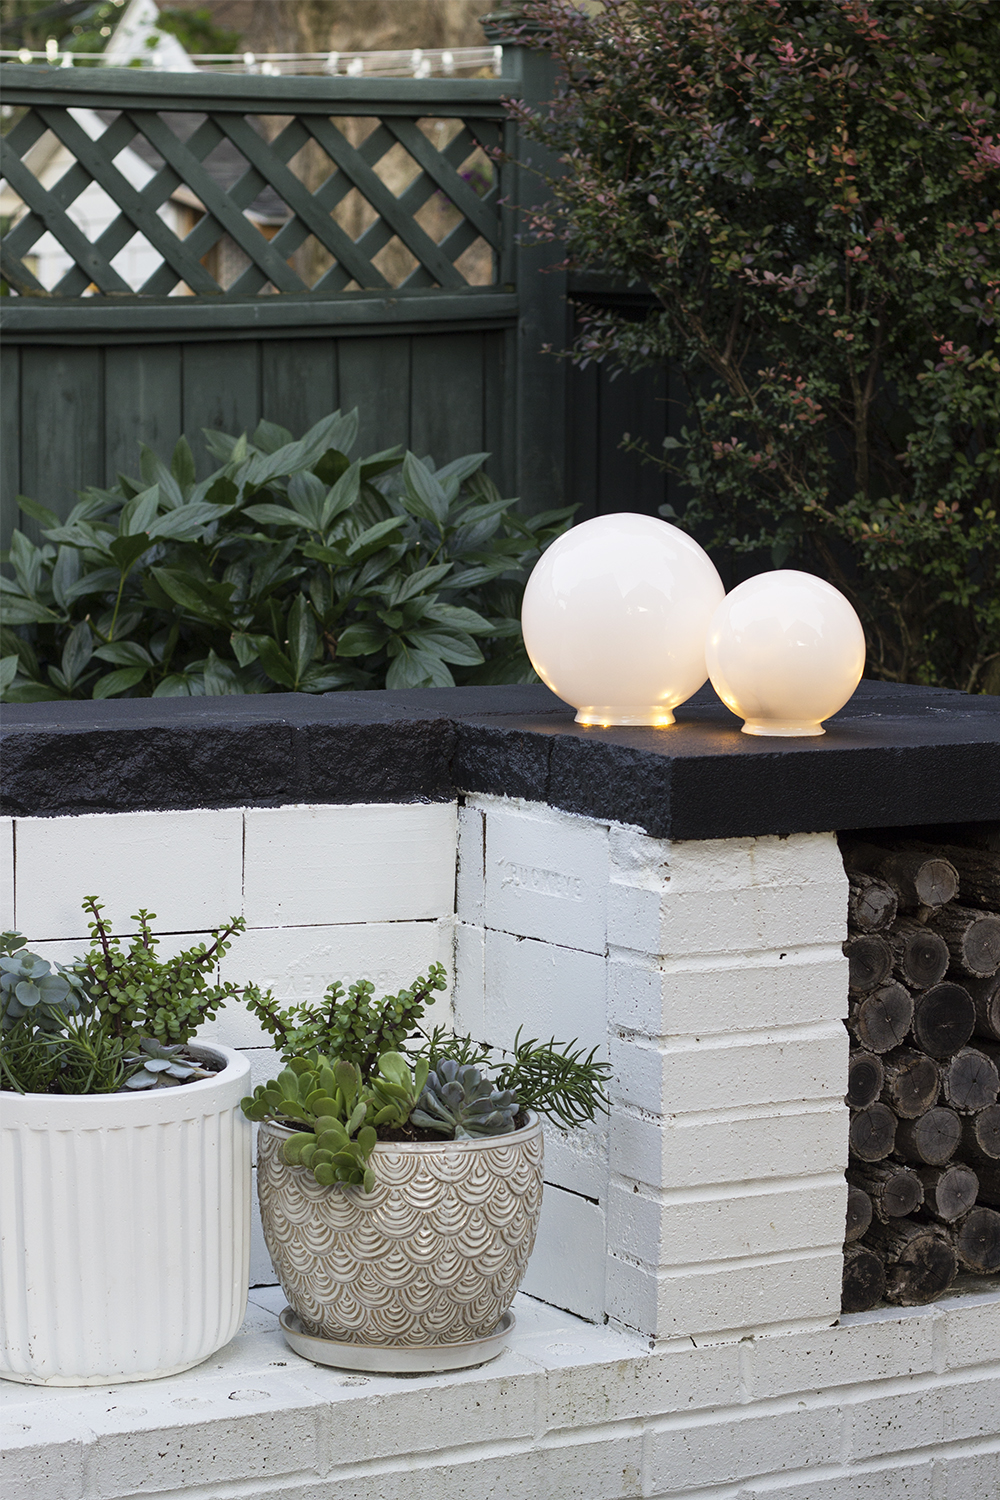 diy outdoor globe lights